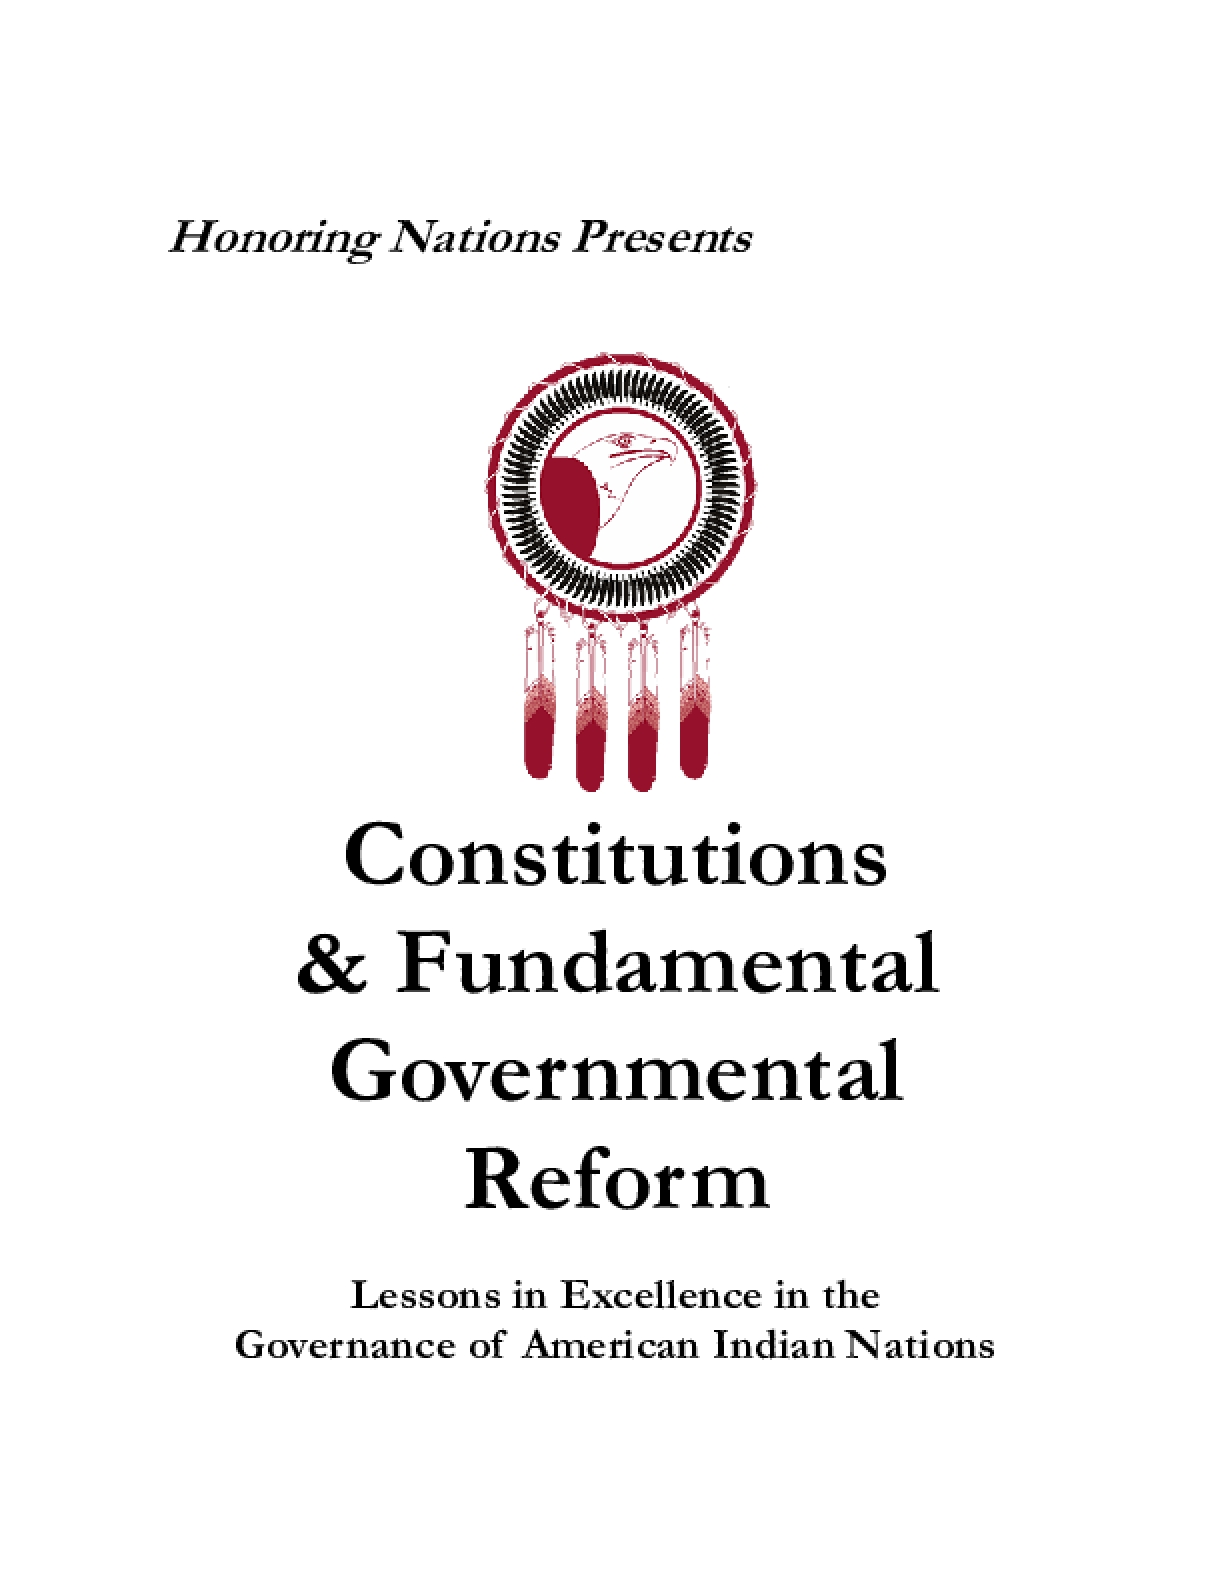 Constitutions and Fundamental Government Reform: Lessons in Excellence in the Governance of American Indian Nations